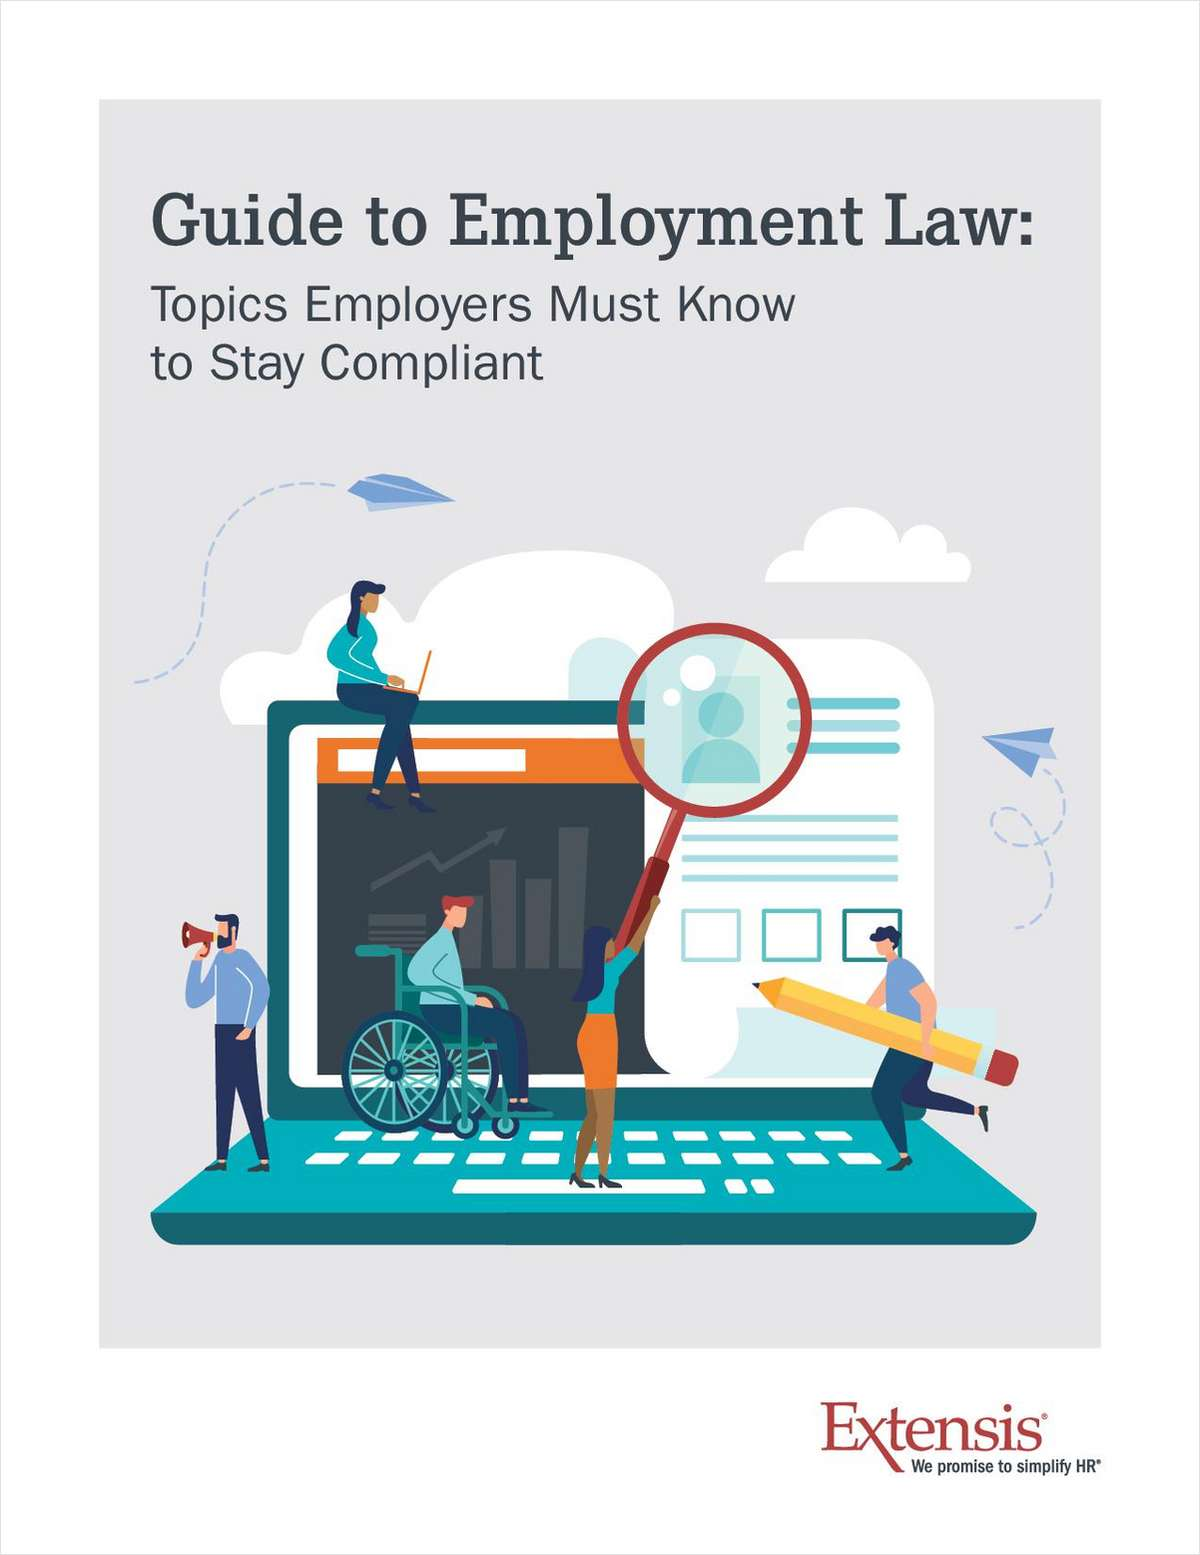 Guide to Employment Law: Topics Employers Must Know to Stay Compliant